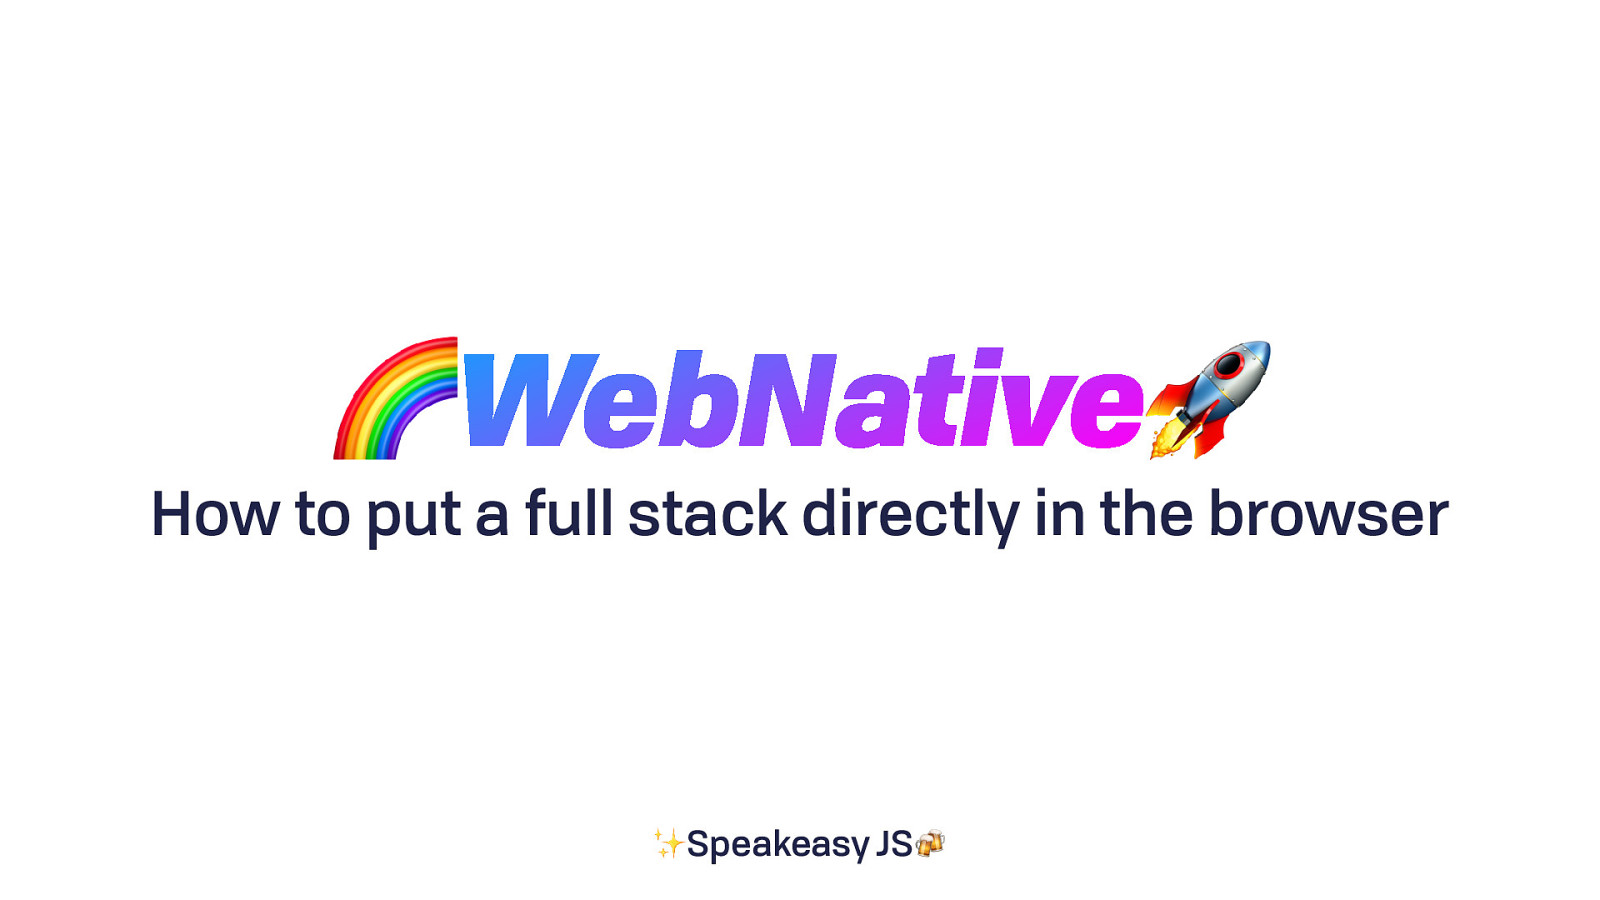 WebNative: How to put a full stack directly in the browser by Brooklyn Zelenka